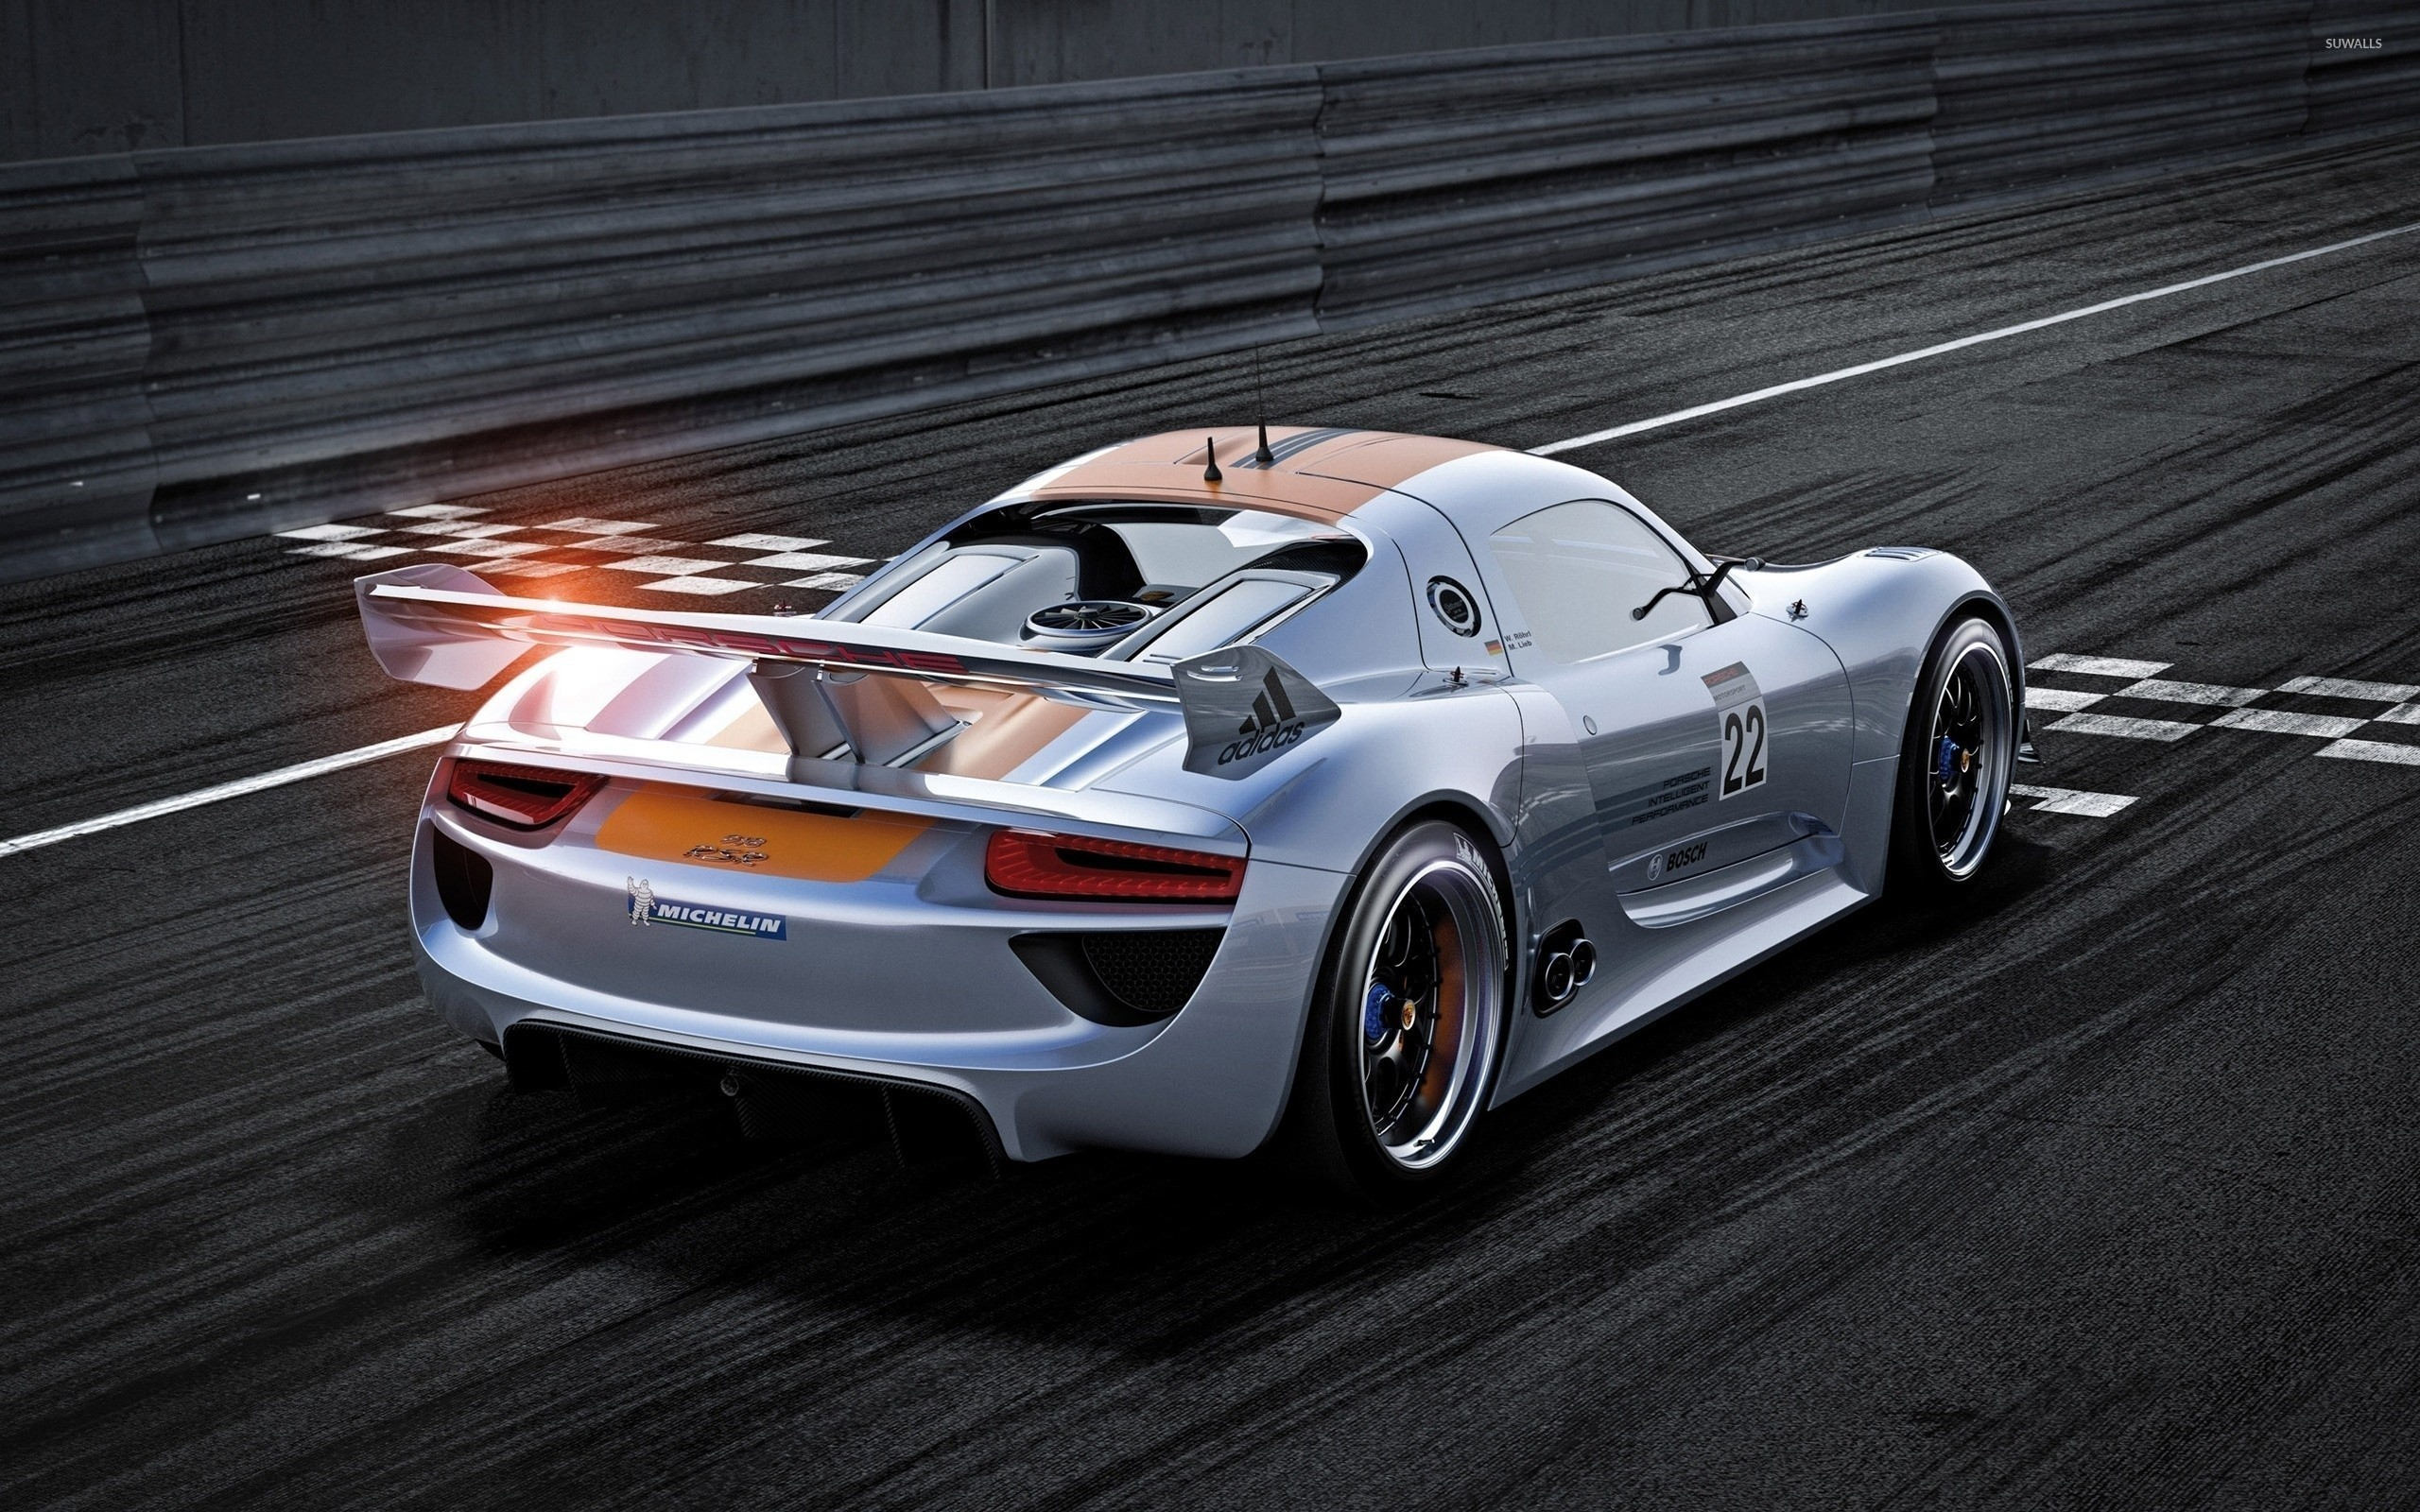 porsche 918 spyder [3] wallpaper - car wallpapers - #43814